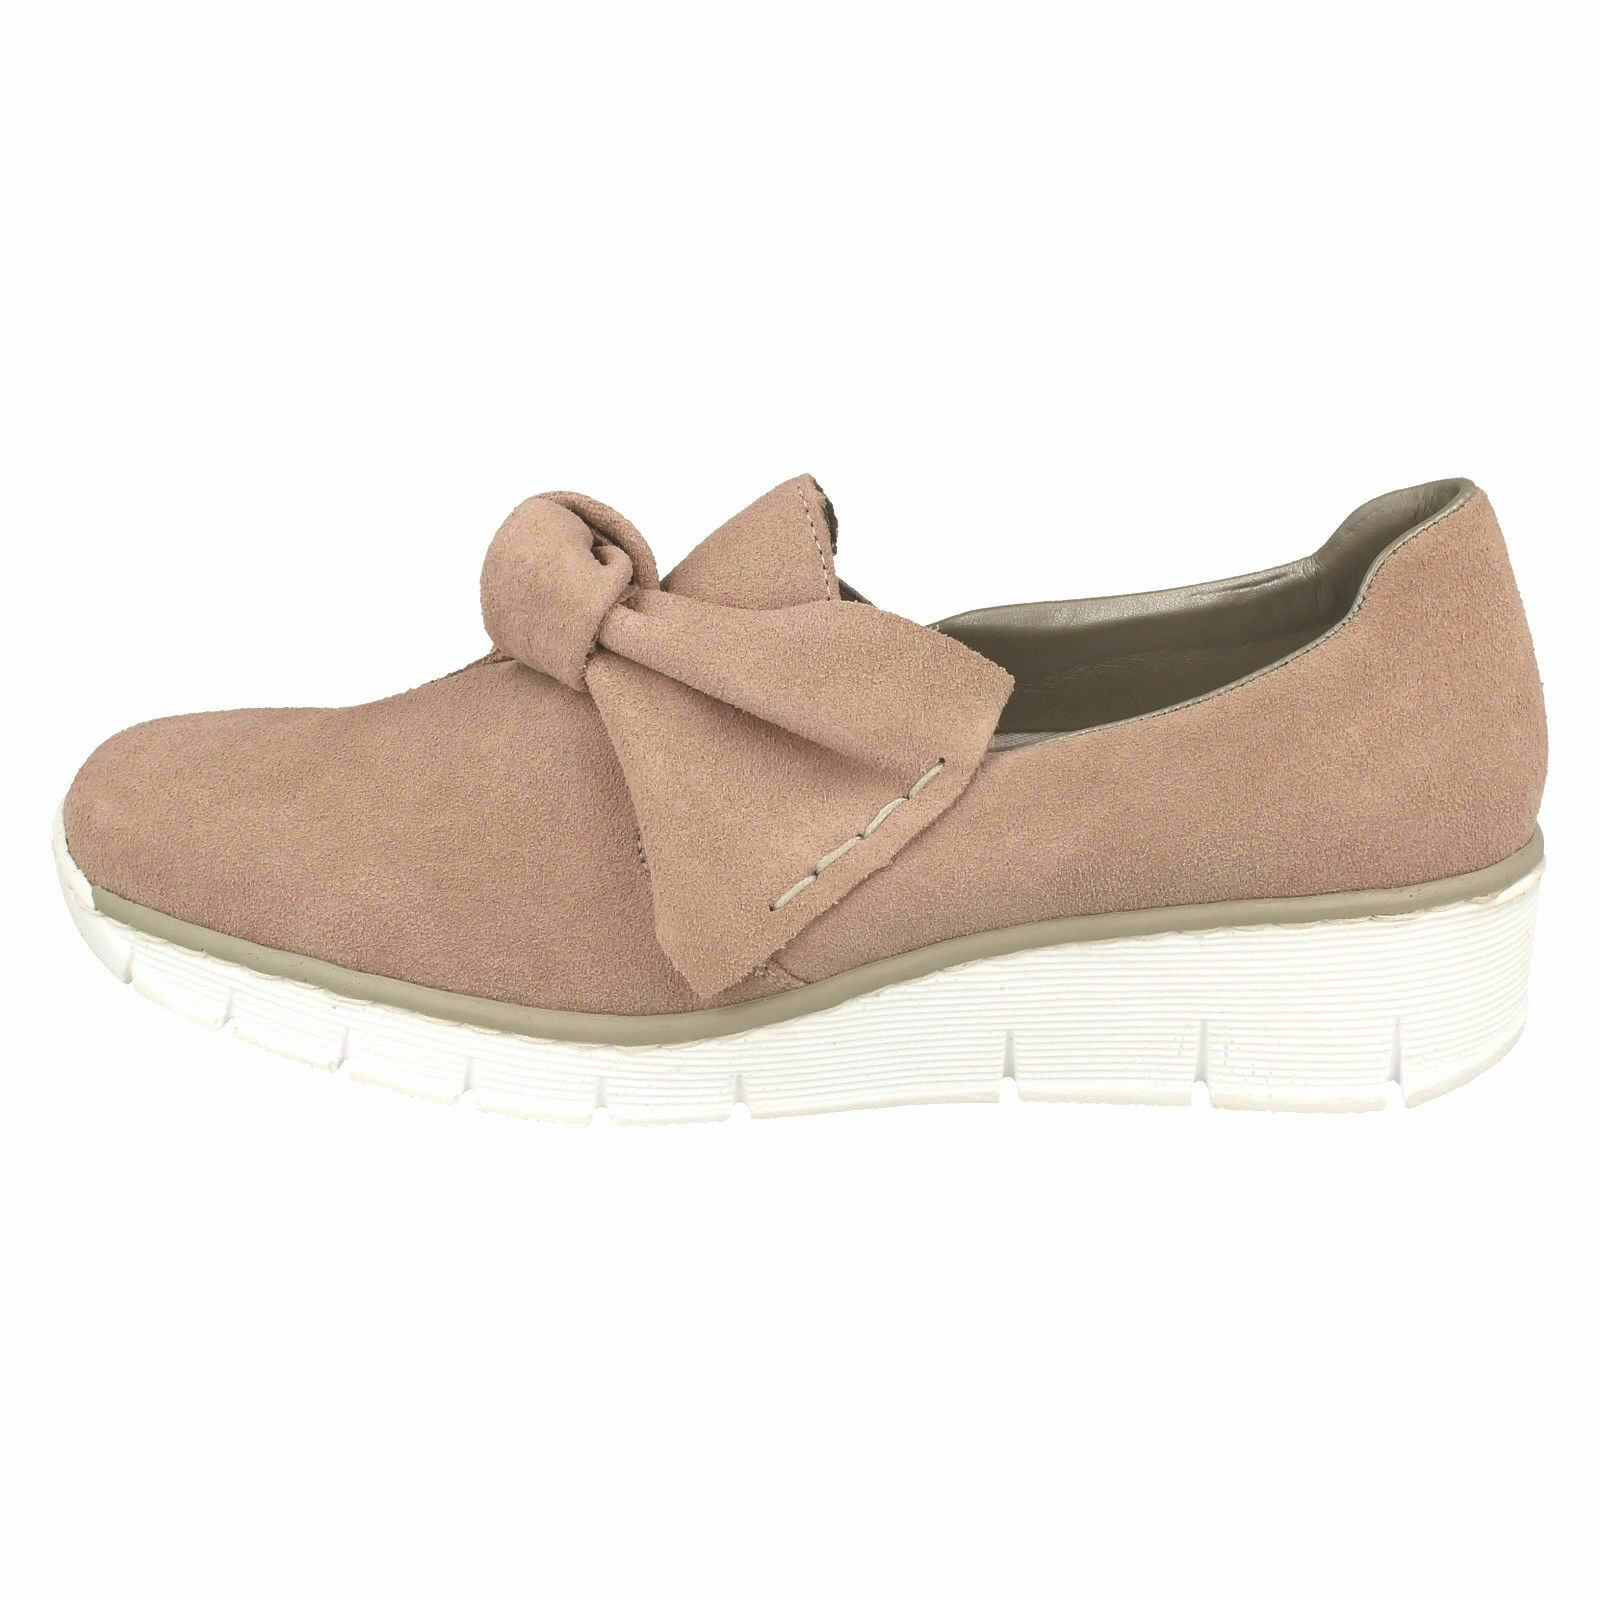 537Q4 LADIES RIEKER BOW FRONT SUEDE SLIP ON LOW LOW LOW WEDGE HEEL SMART CASUAL SHOES 5b3dd7